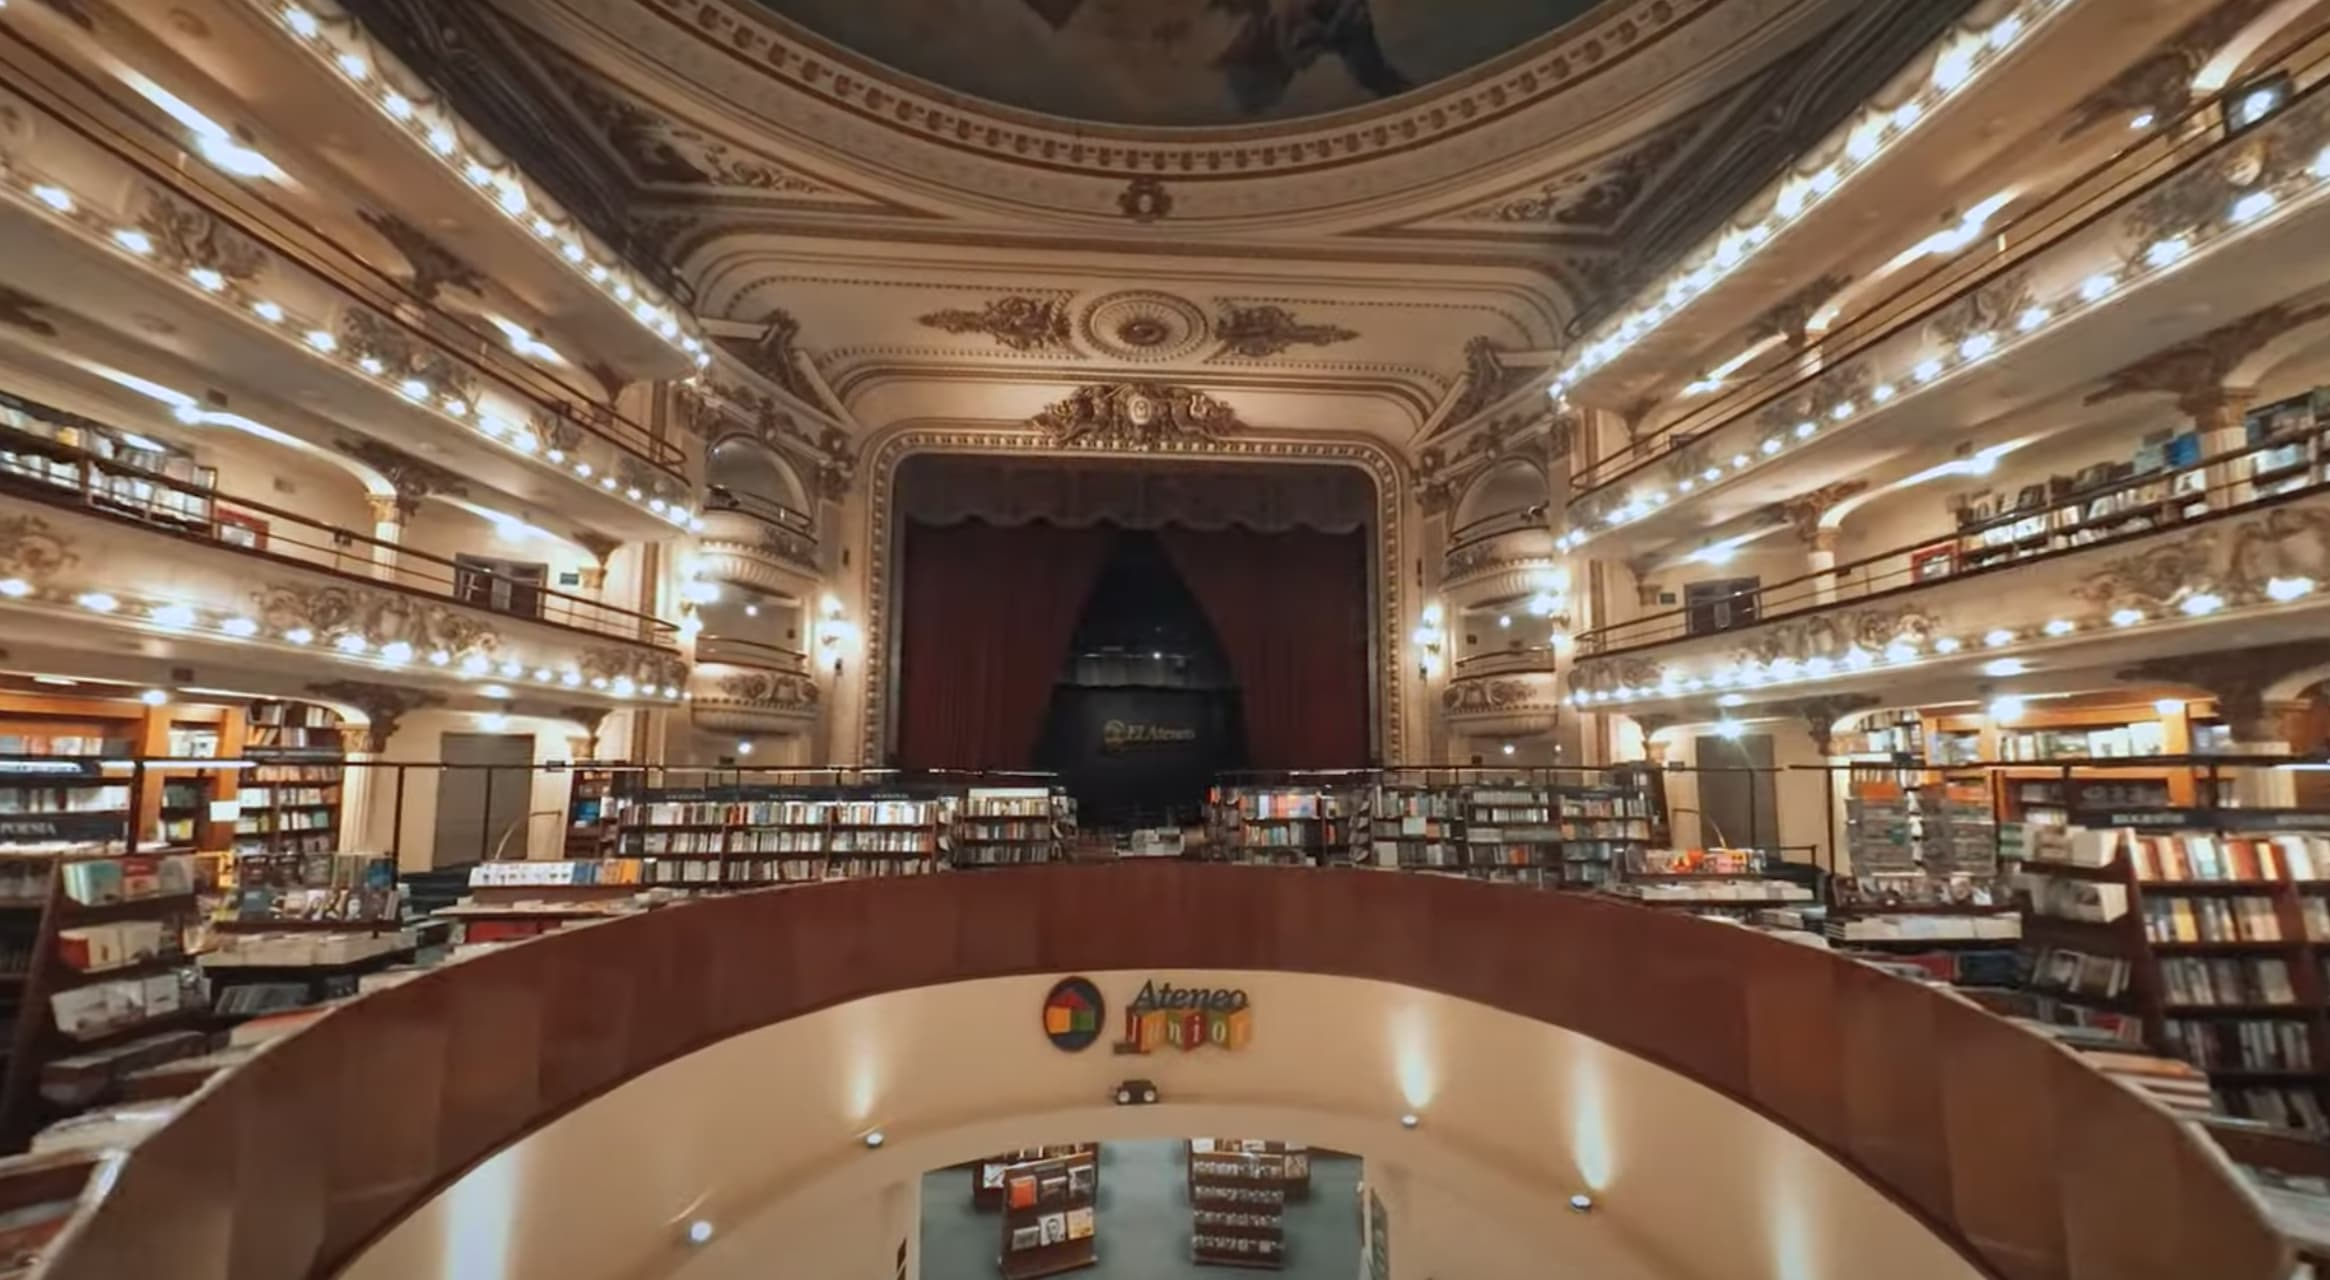 Buenos Aires - What a Bookstore in Buenos Aires!